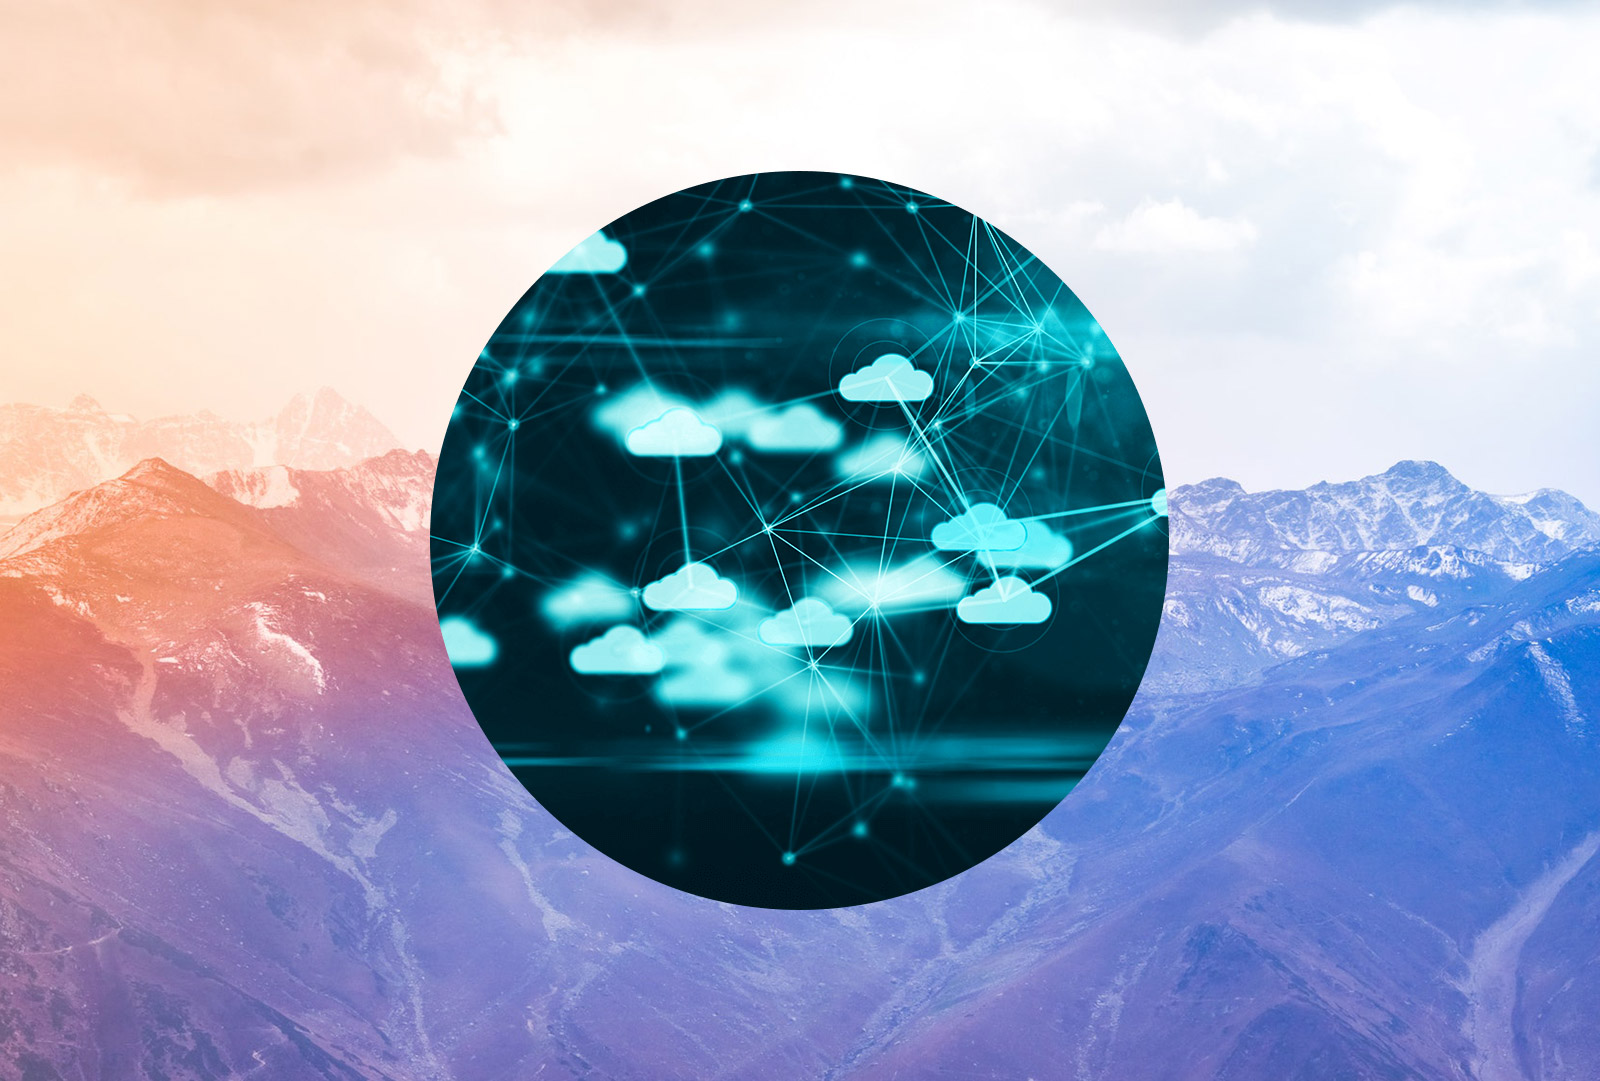 Complexity and budgetary constraints complicate cloud security